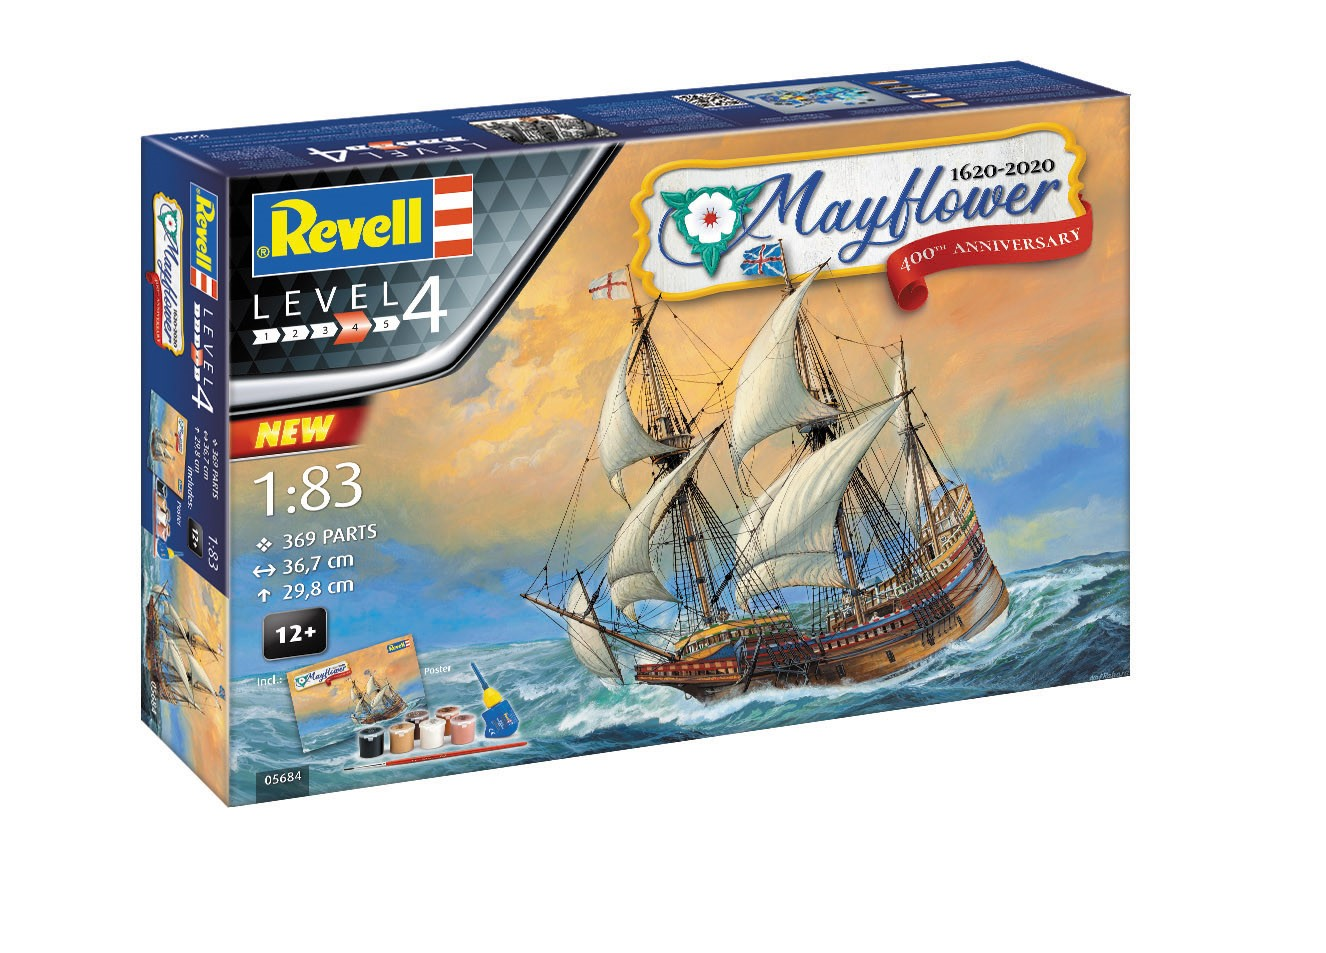 05684_Mayflower_Pack-Shot Revell-Neuheiten 2020